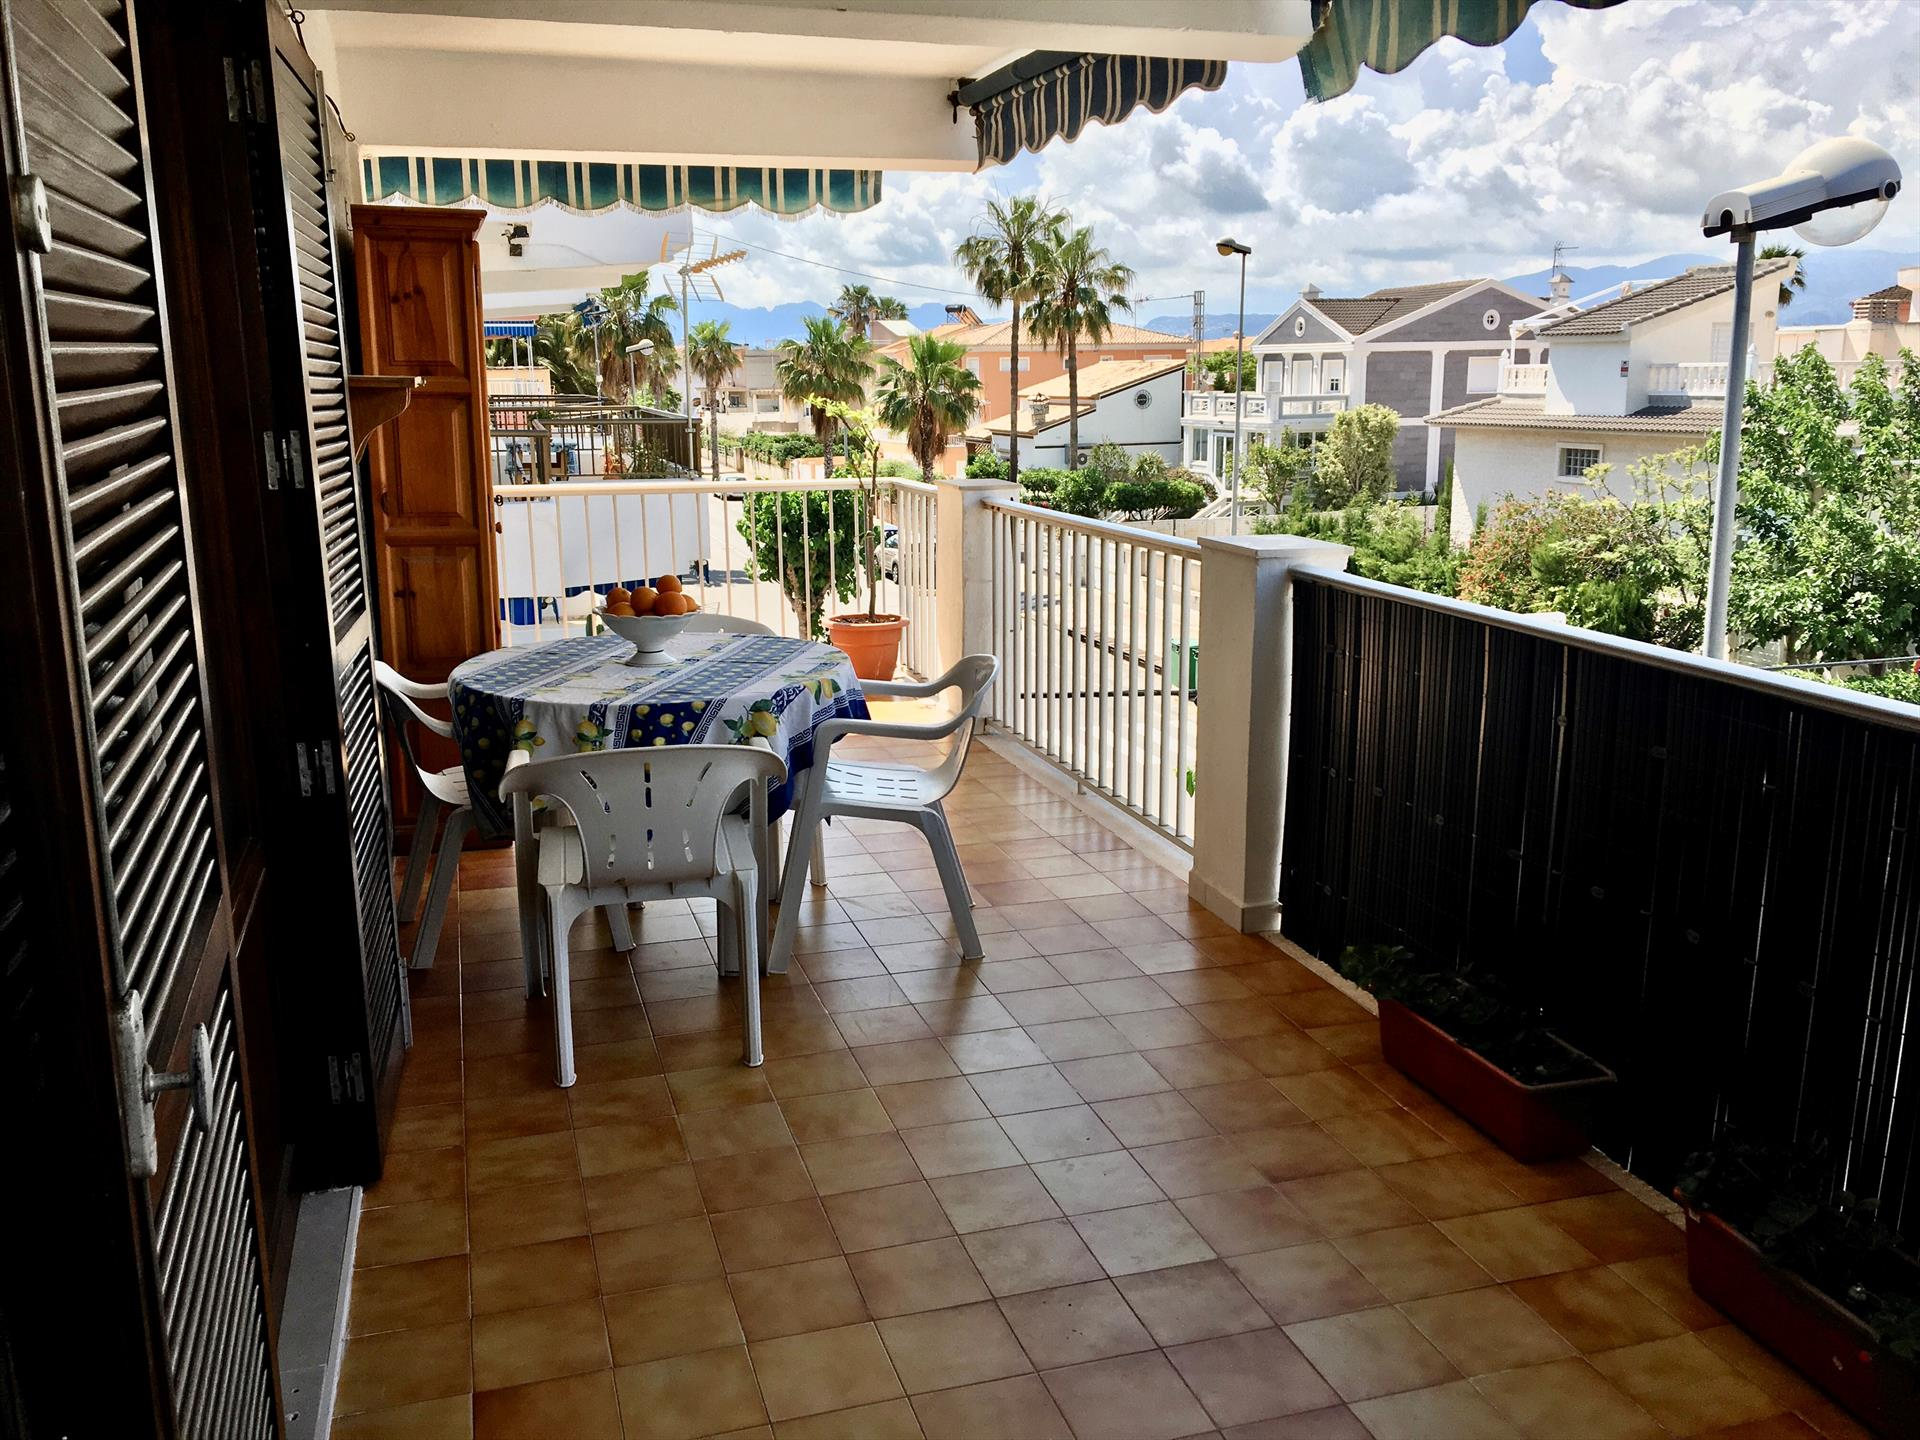 AP475 Via de Ronda Pau Pi, Rustic and comfortable apartment in Oliva, on the Costa Blanca, Spain for 5 persons.....